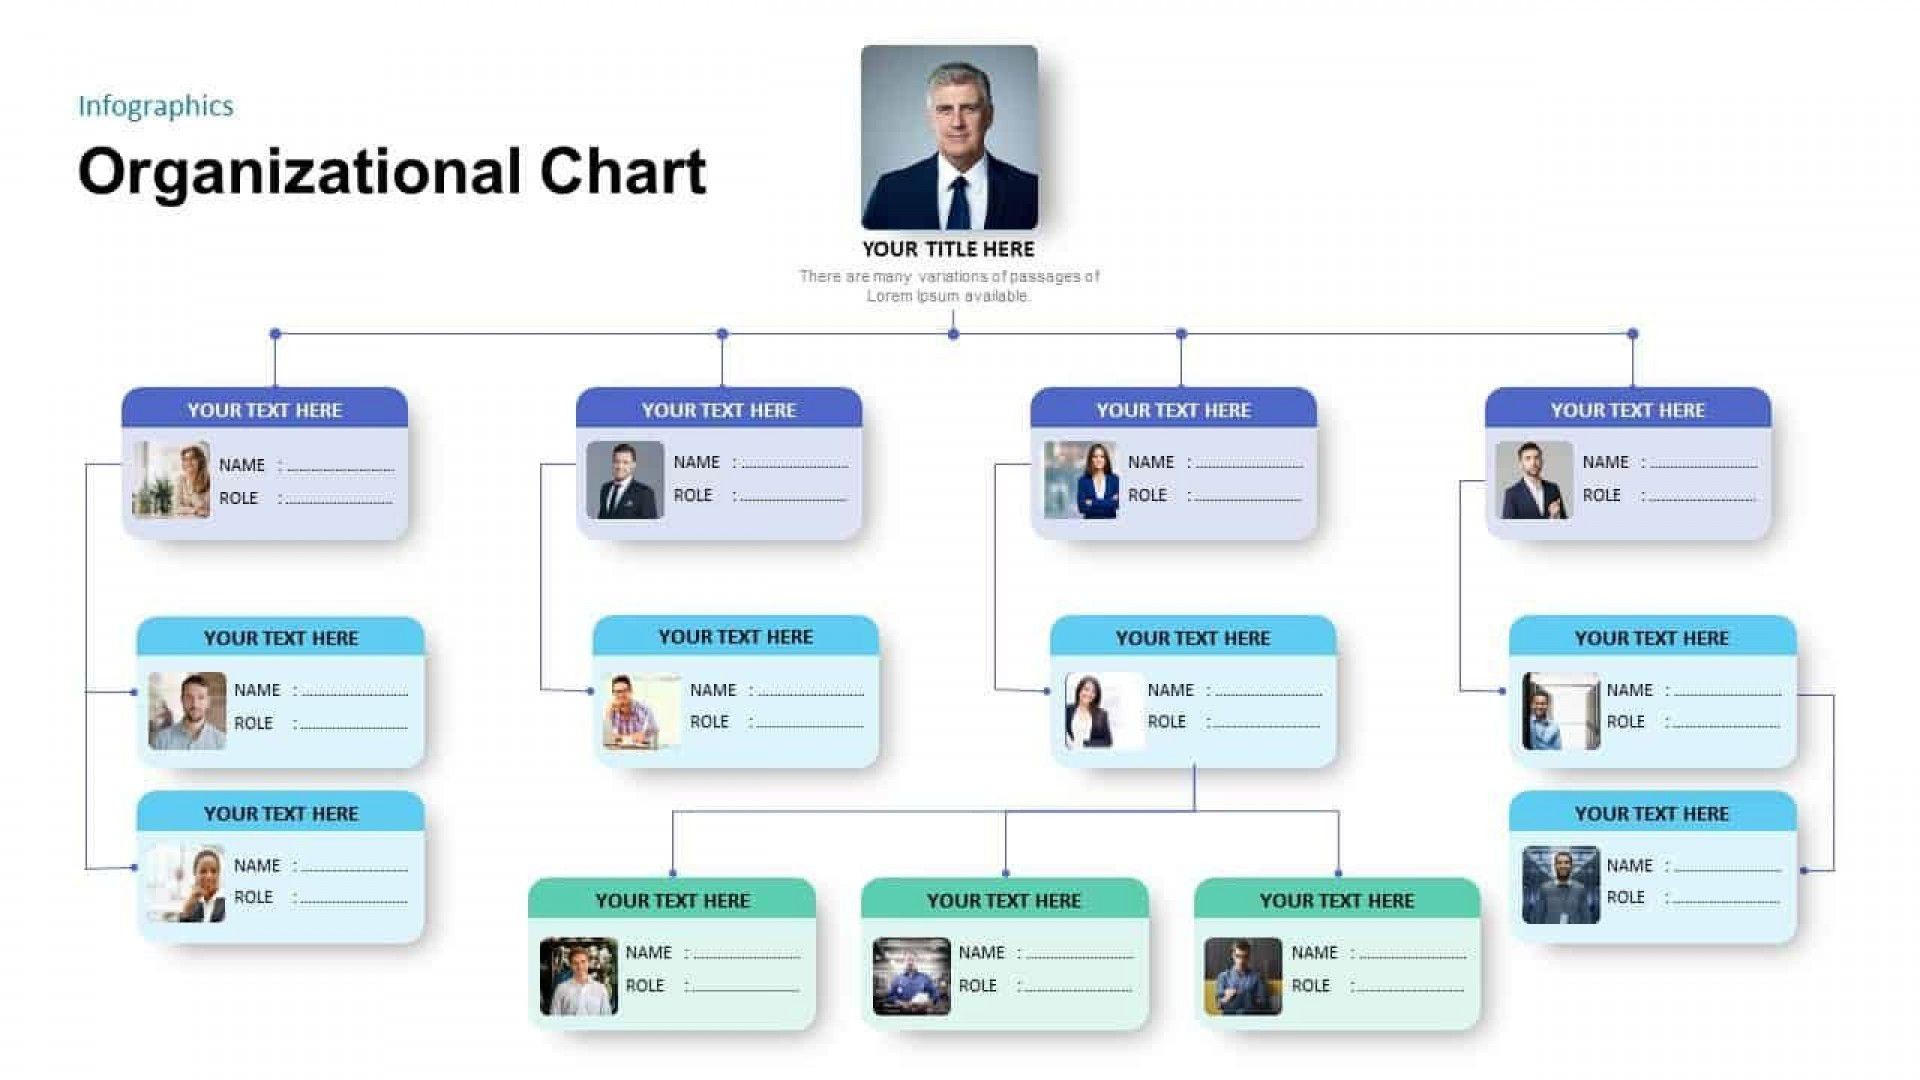 000 Unusual Microsoft Organisation Chart Template Picture  Visio Organization Excel Office1920